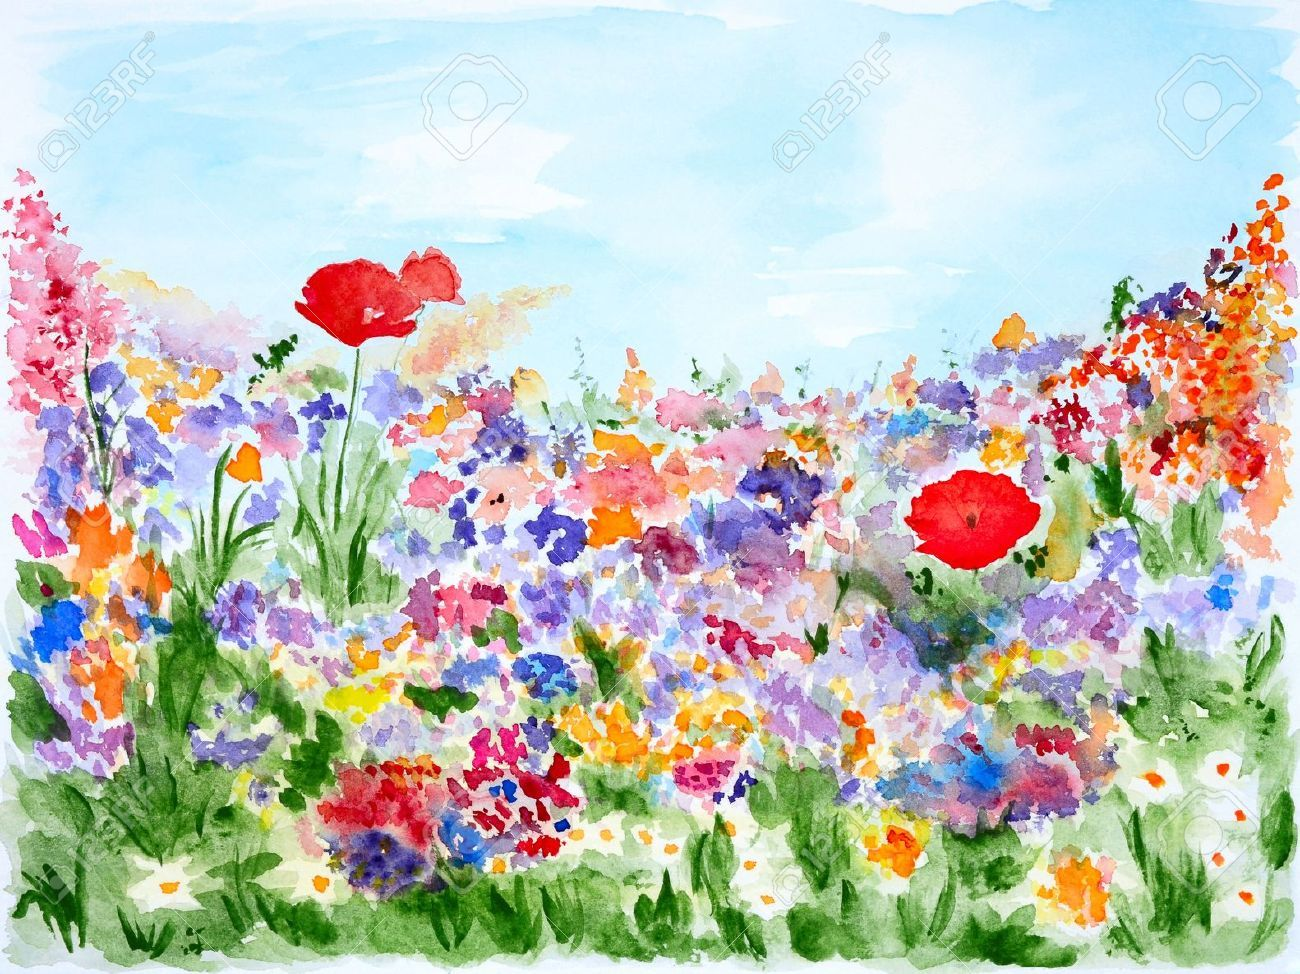 Stock Photo In 2020 Painting Watercolor Paintings Garden Painting